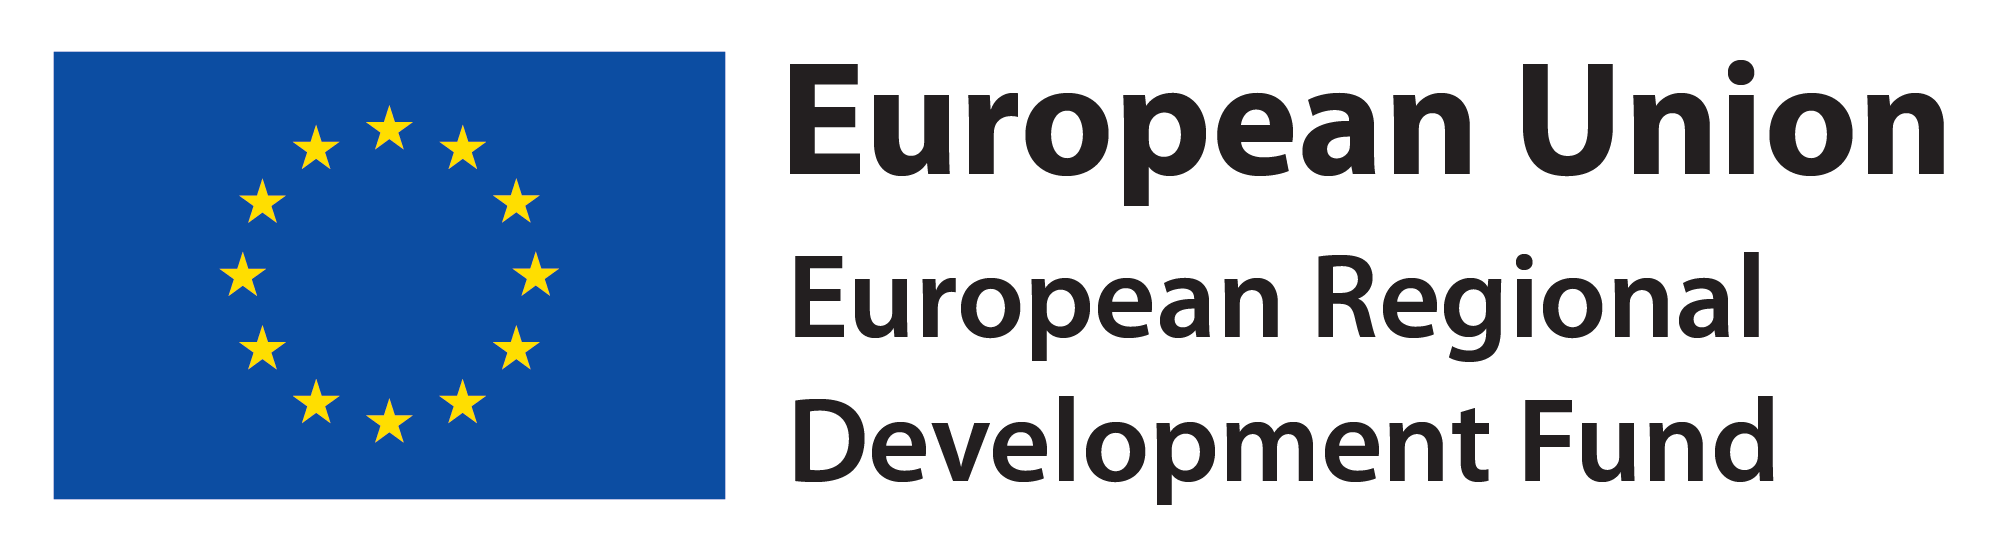 European Regional Development Fund - DGL Group